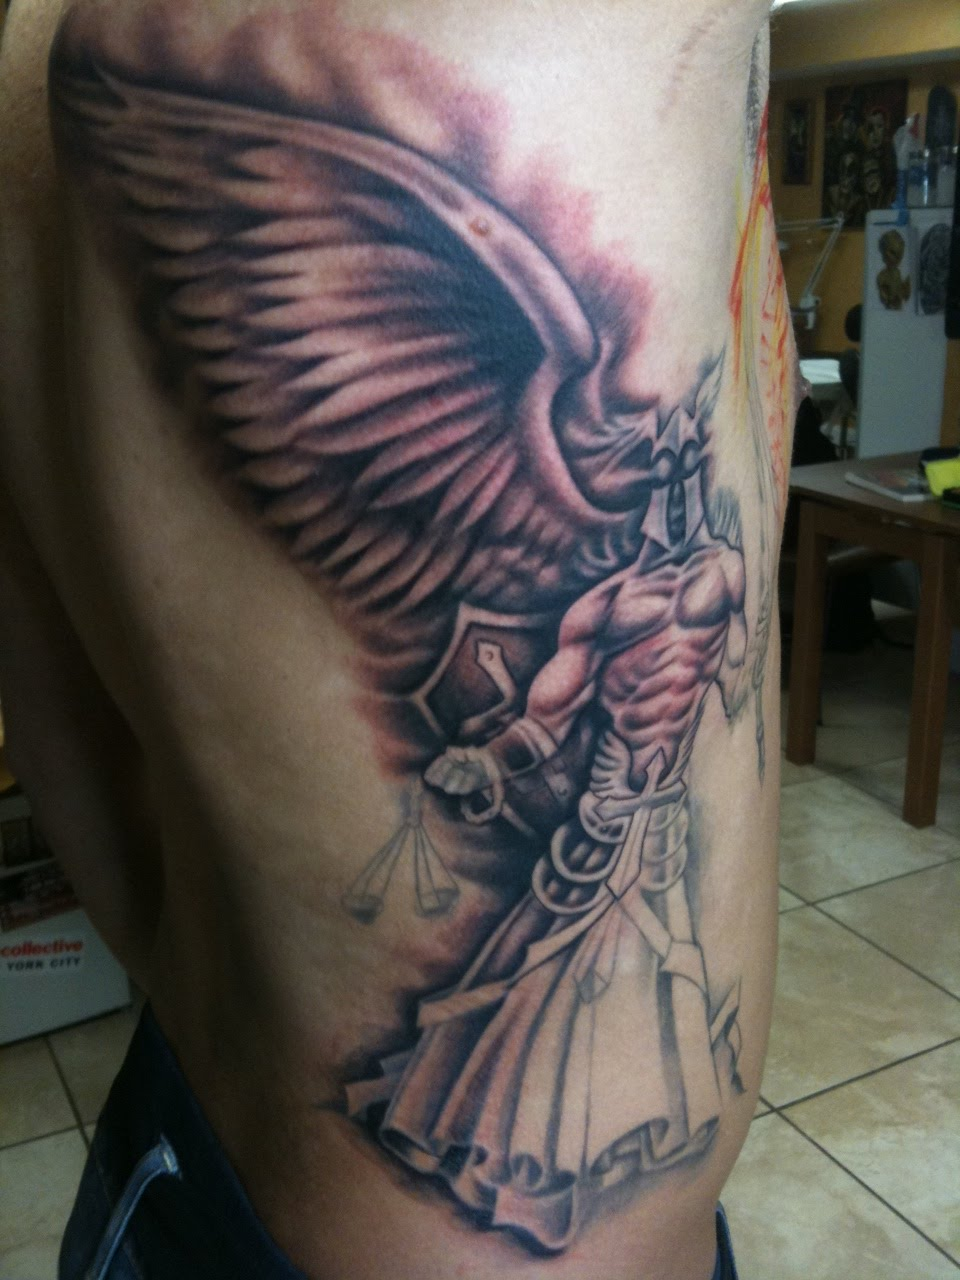 Freehand archangel of justice tattoo in progress.